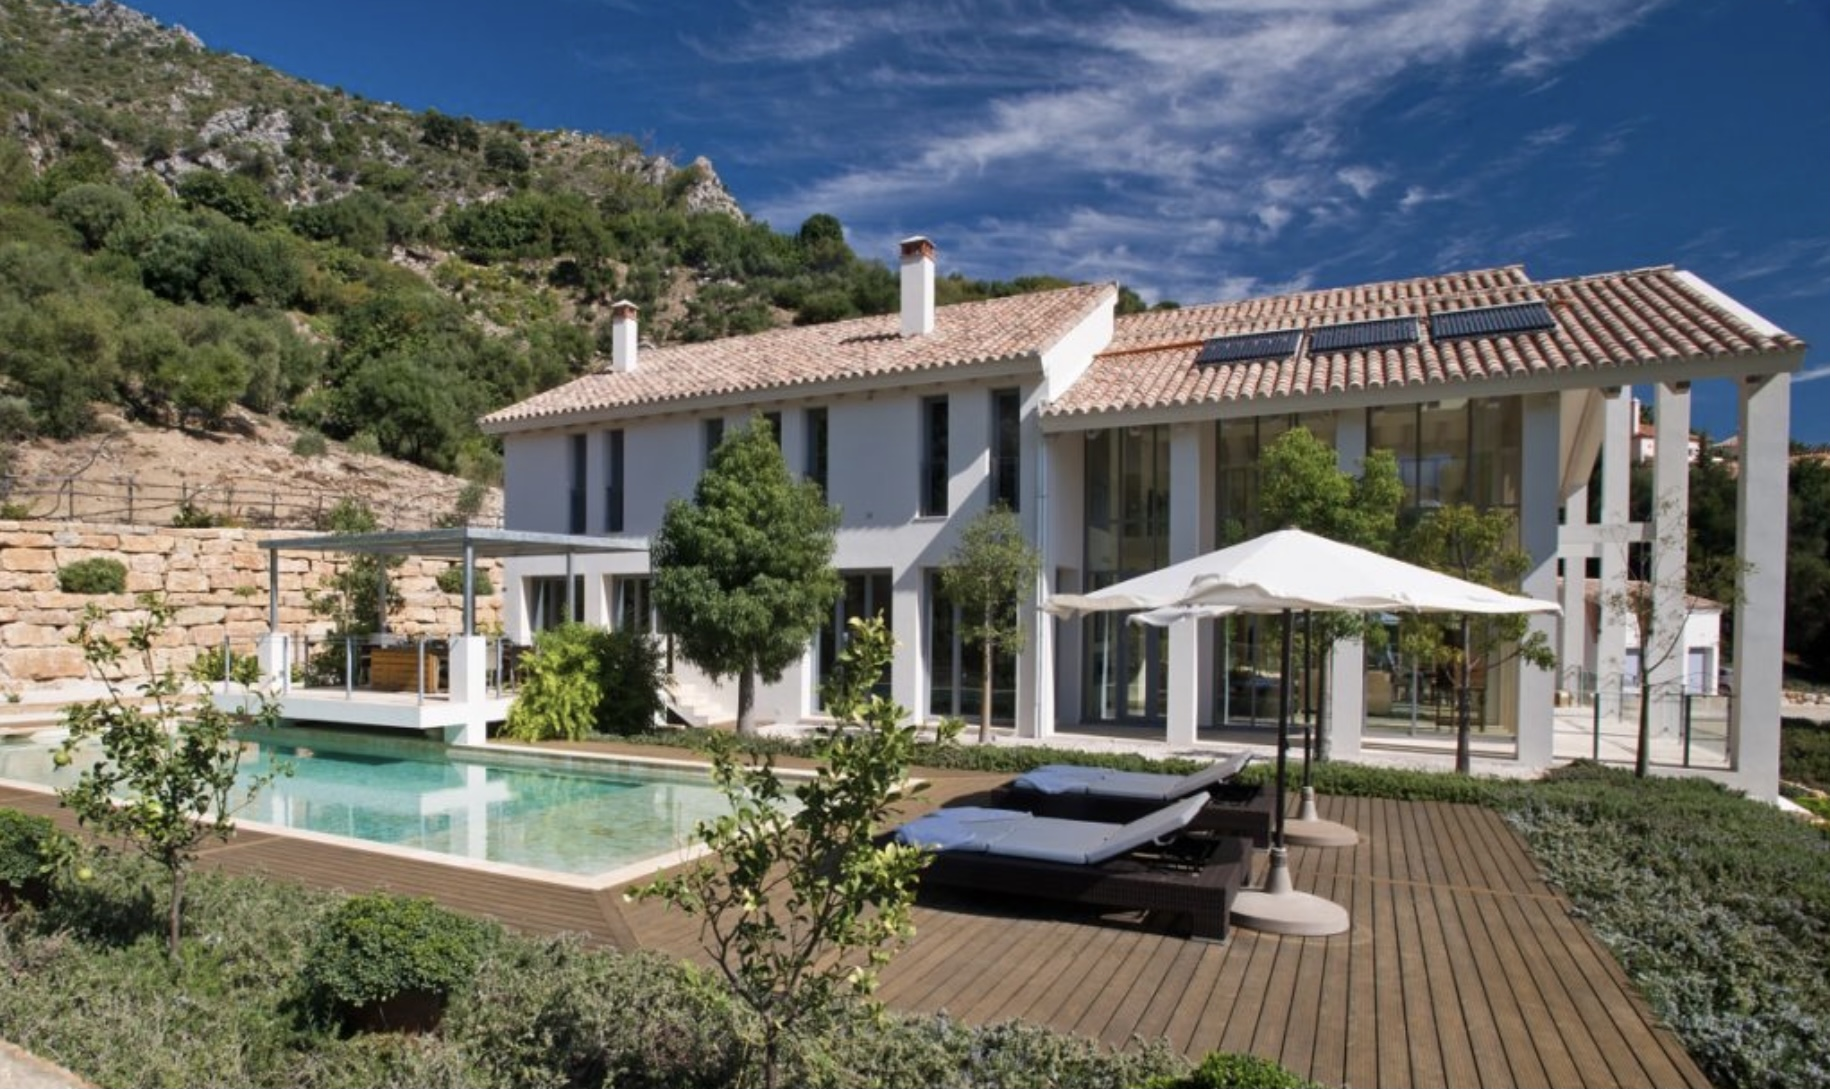 4 bedroom Andalucia, Spain